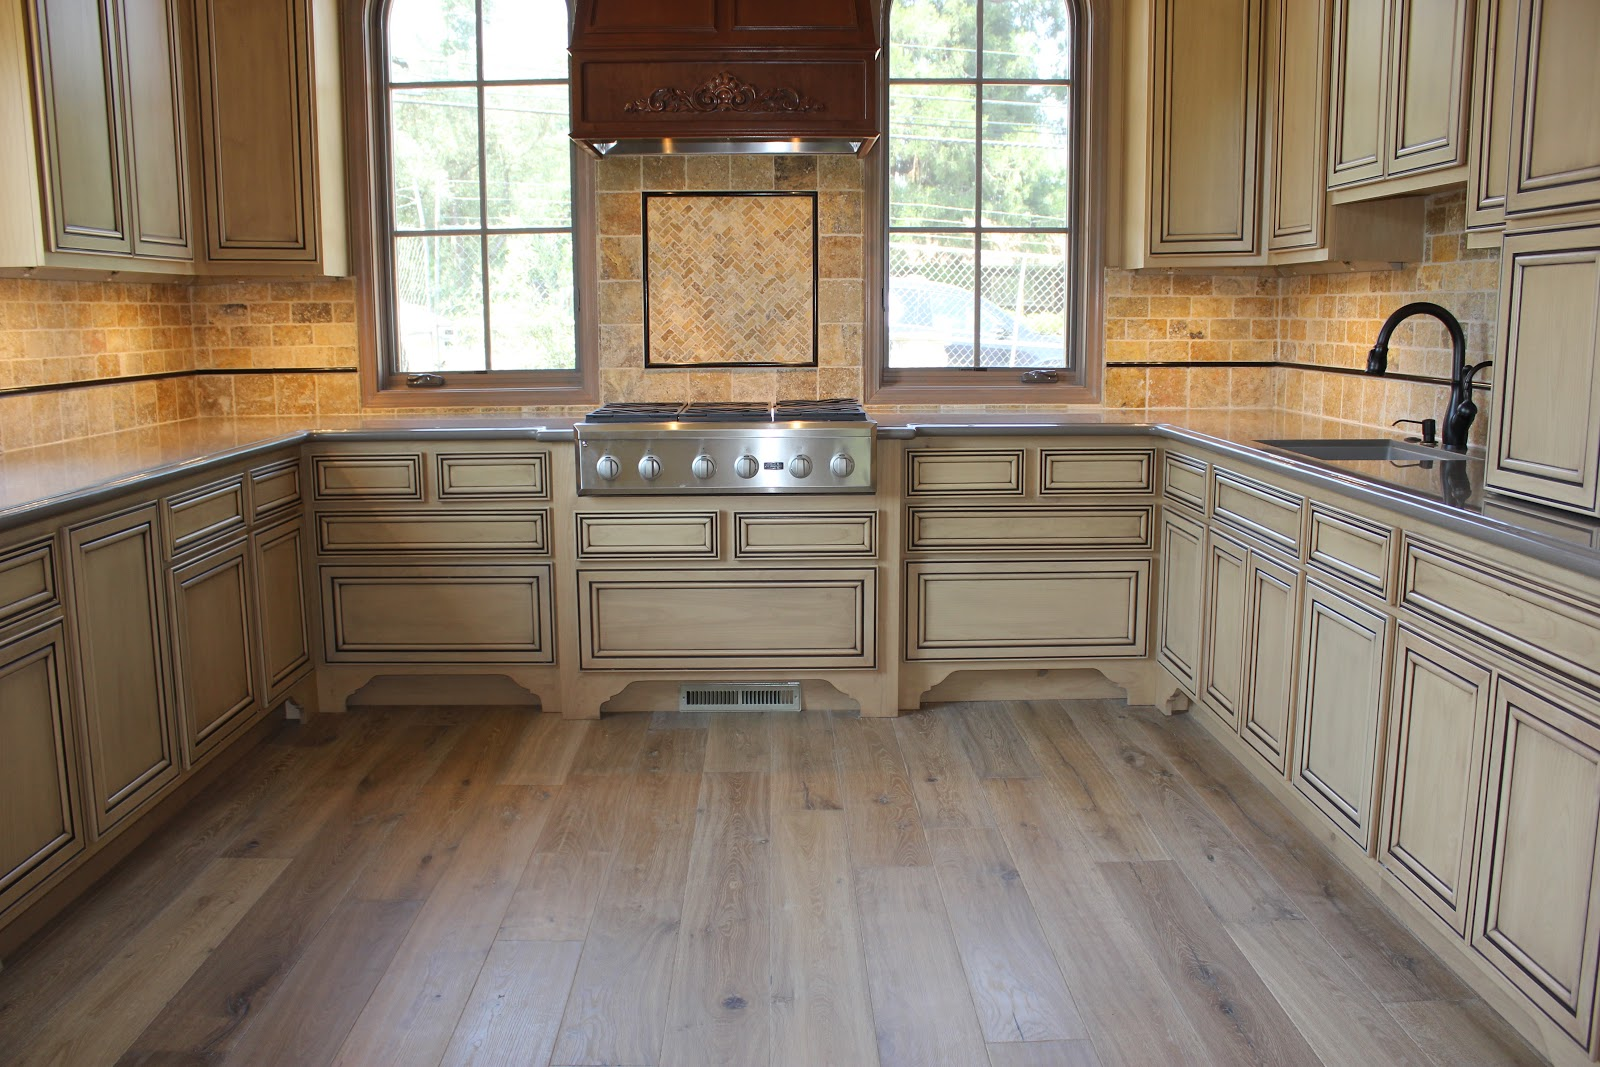 Simas floor and design company hardwood flooring by royal oak for Kitchen flooring